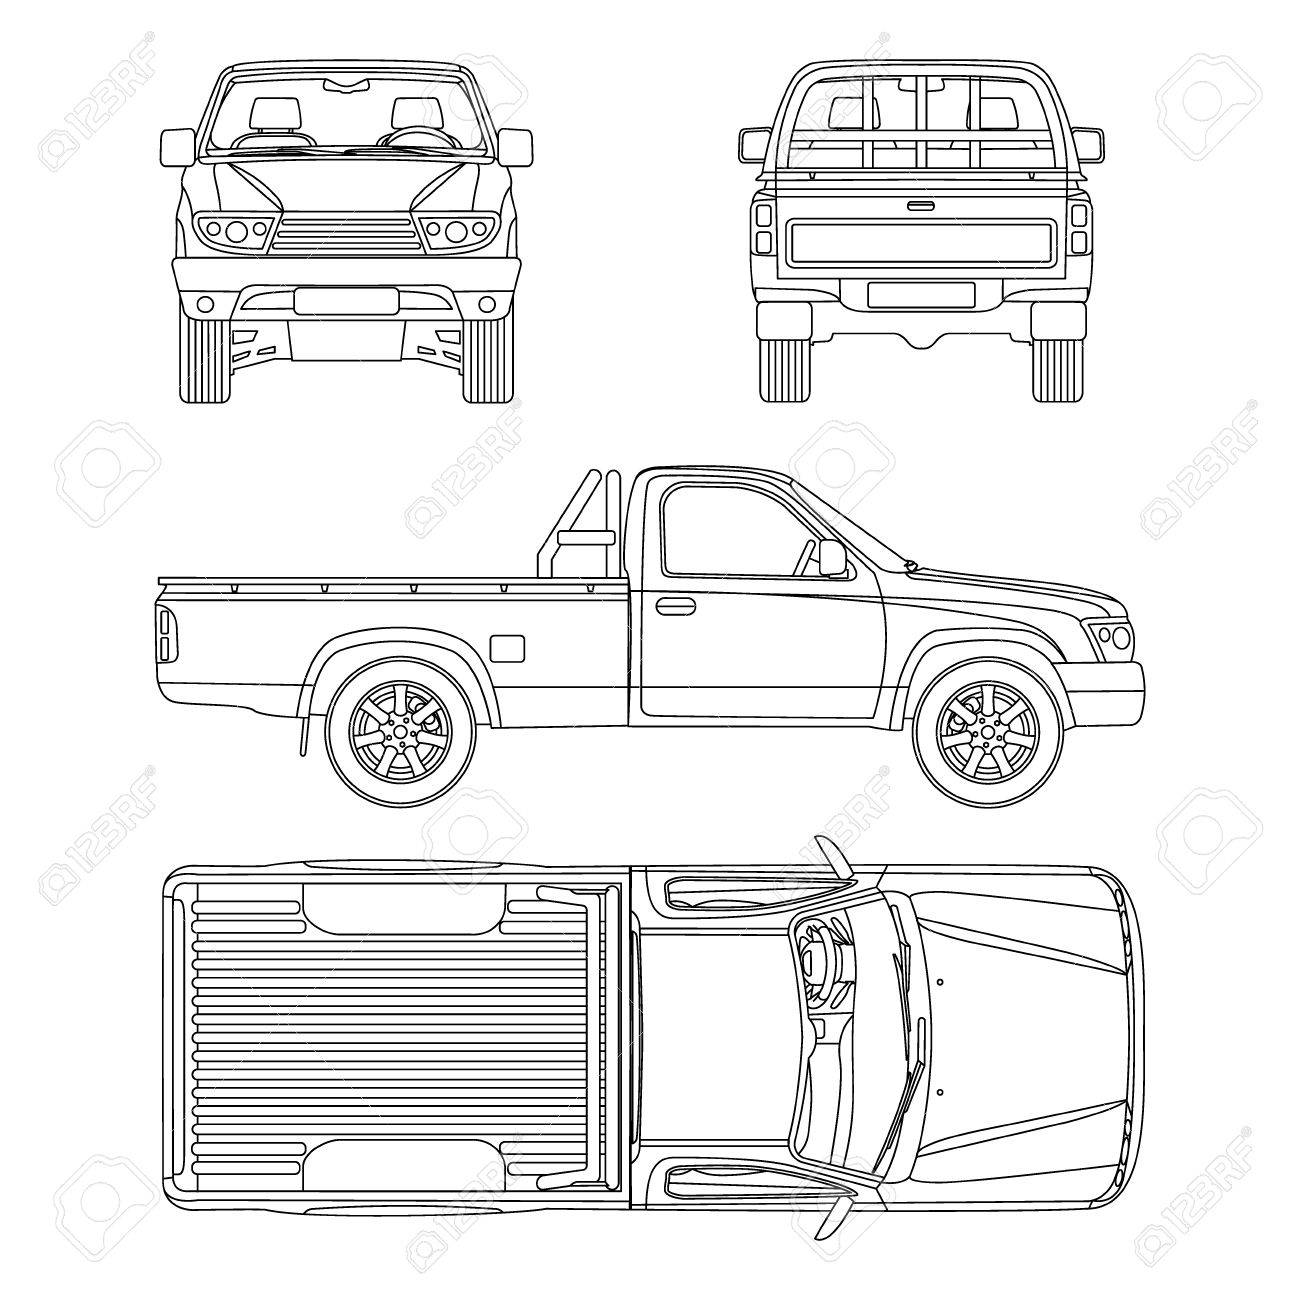 Pickup truck illustration blueprint royalty free cliparts vectors pickup truck illustration blueprint stock vector 55832520 malvernweather Image collections